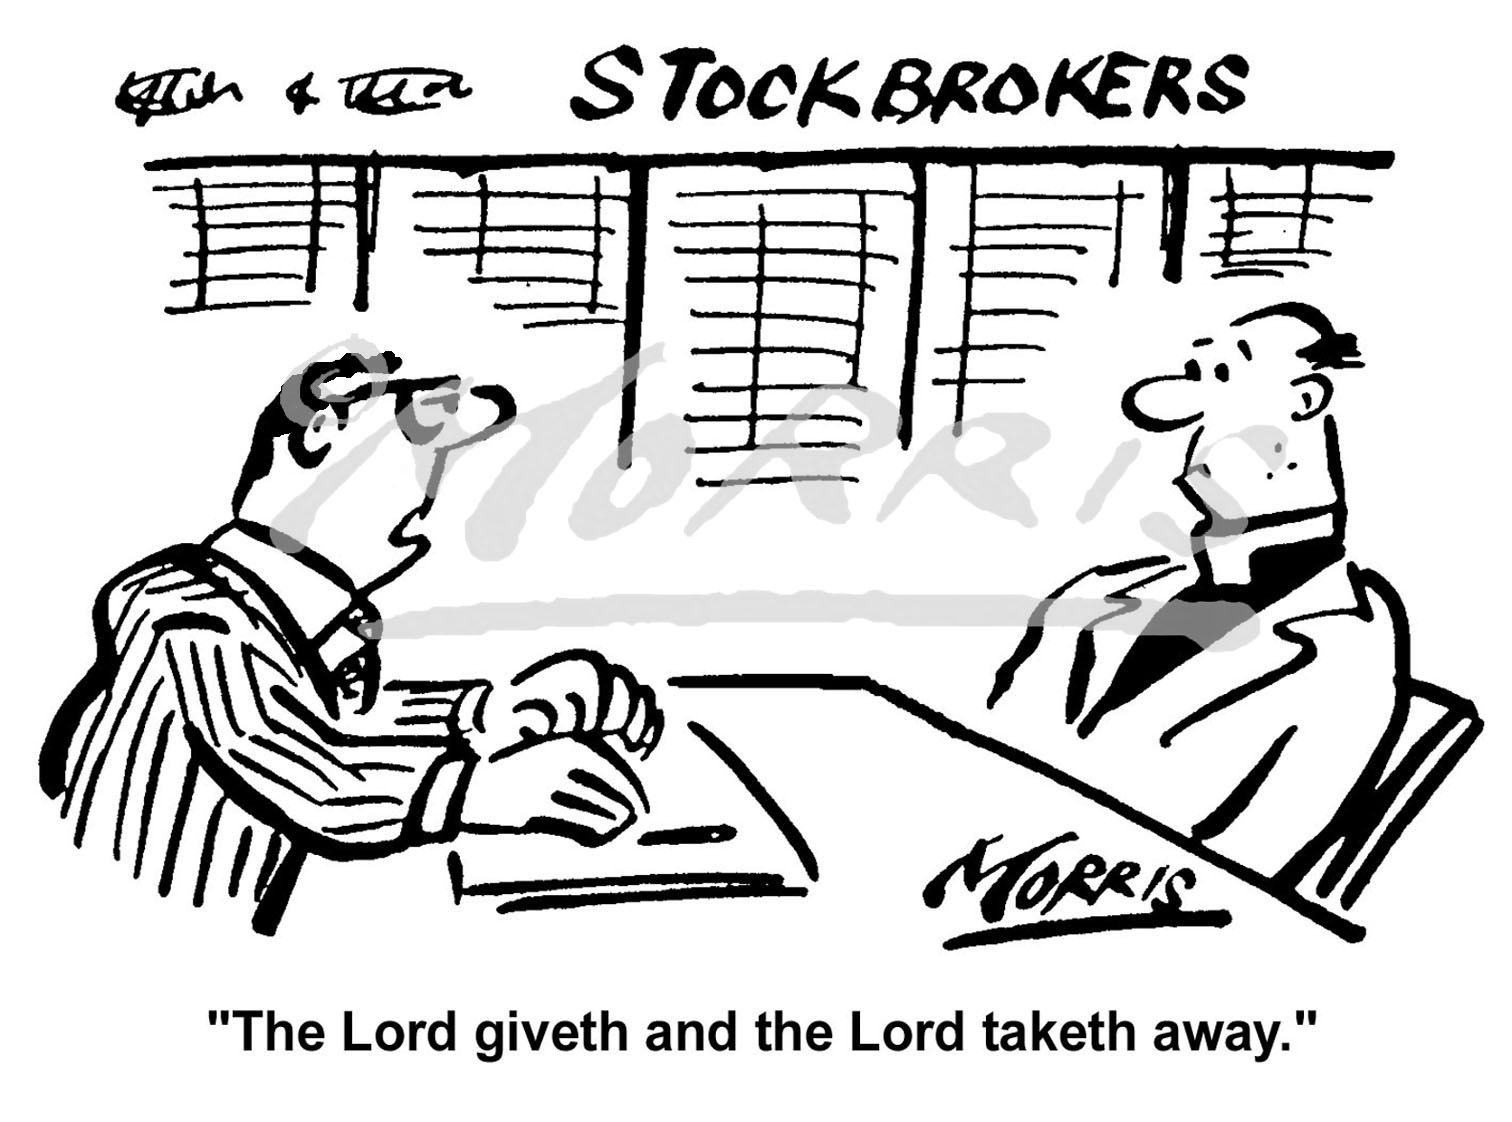 Stockbroker business cartoon Ref: 0119bw